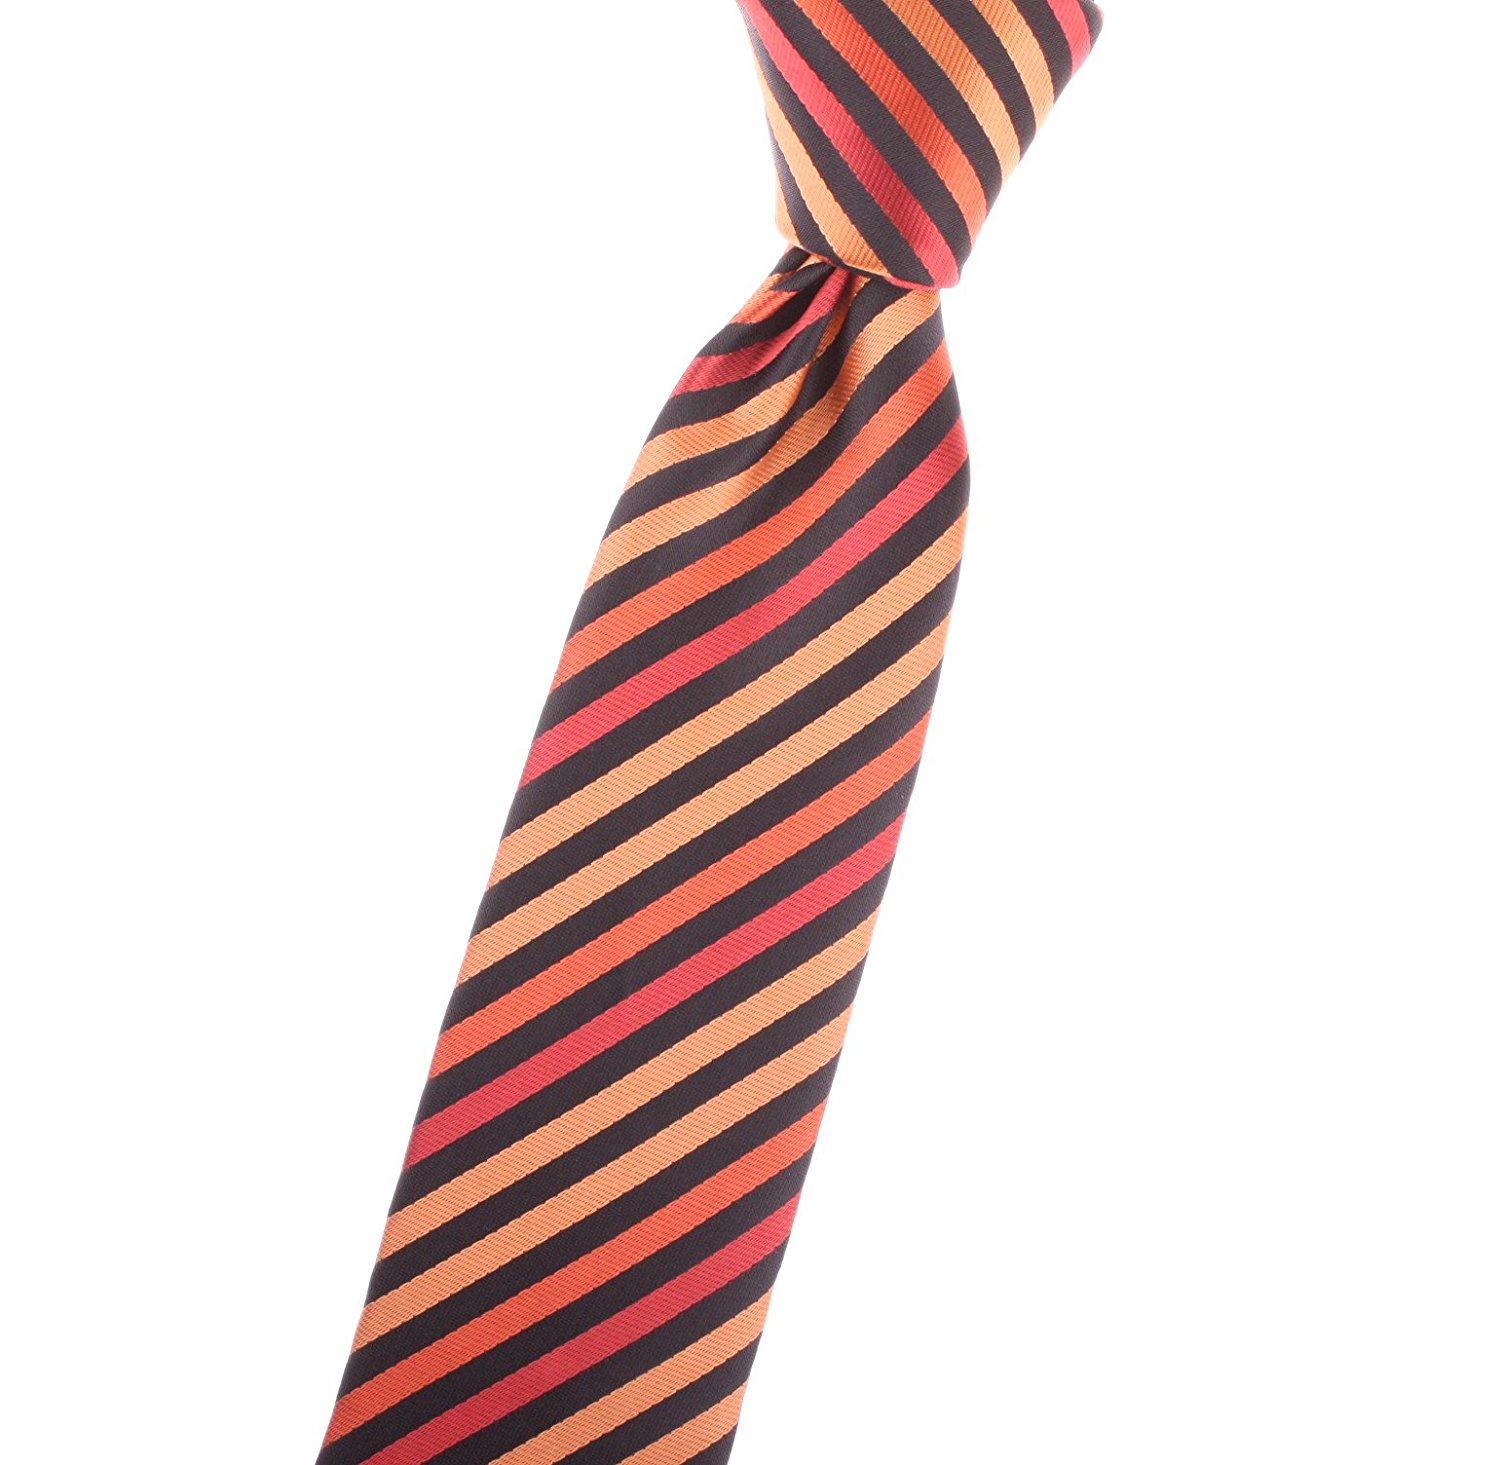 Boy's / Youth / Kid's / Children's Ties Striped Orange and Black, with Onyx Black, Rust, Burnt & Flame Orange - by Jon vanDyk